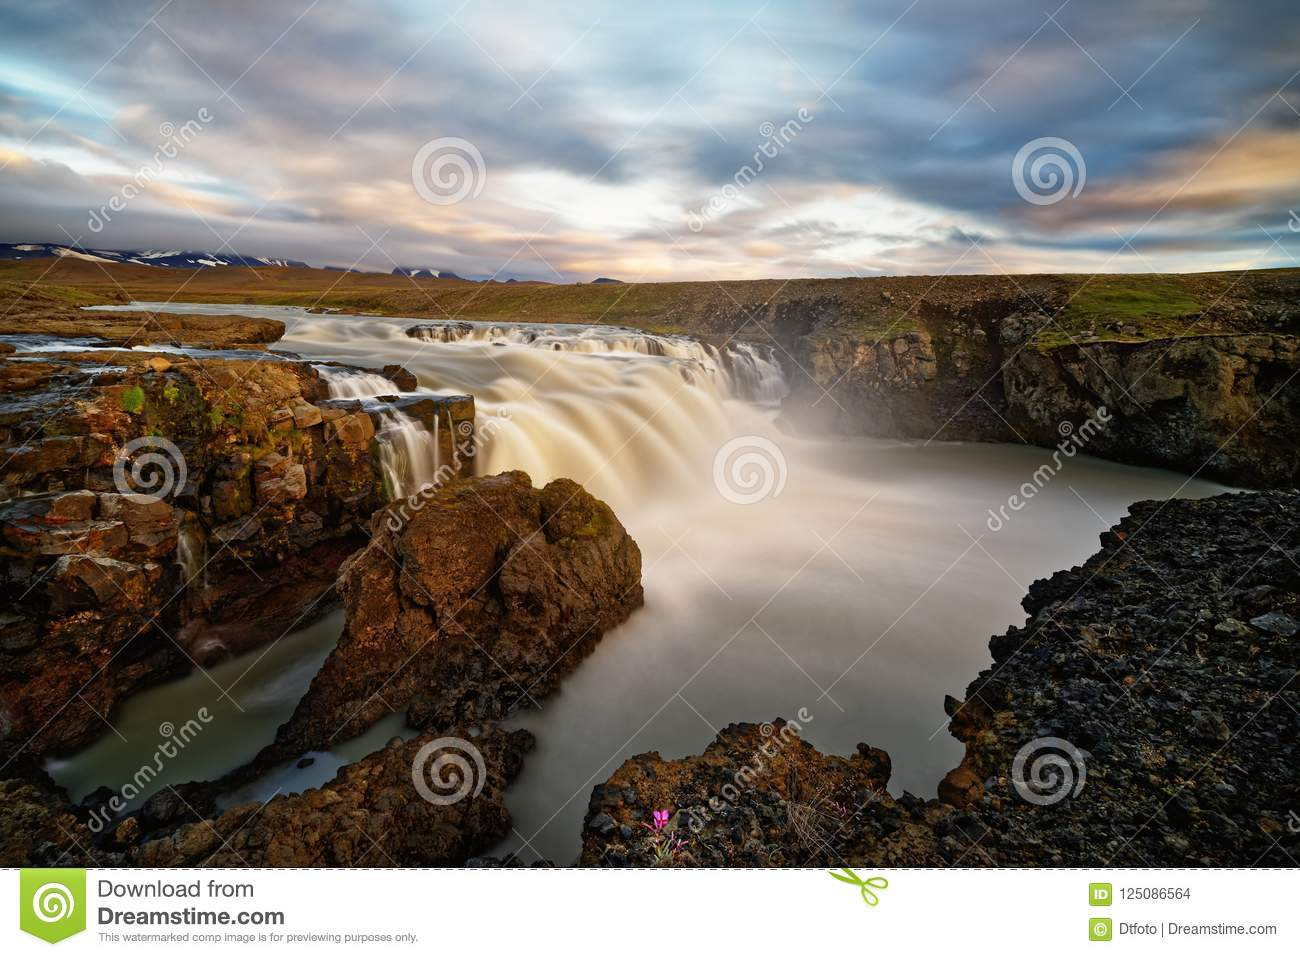 Waterfall in wild landscape in the evening light